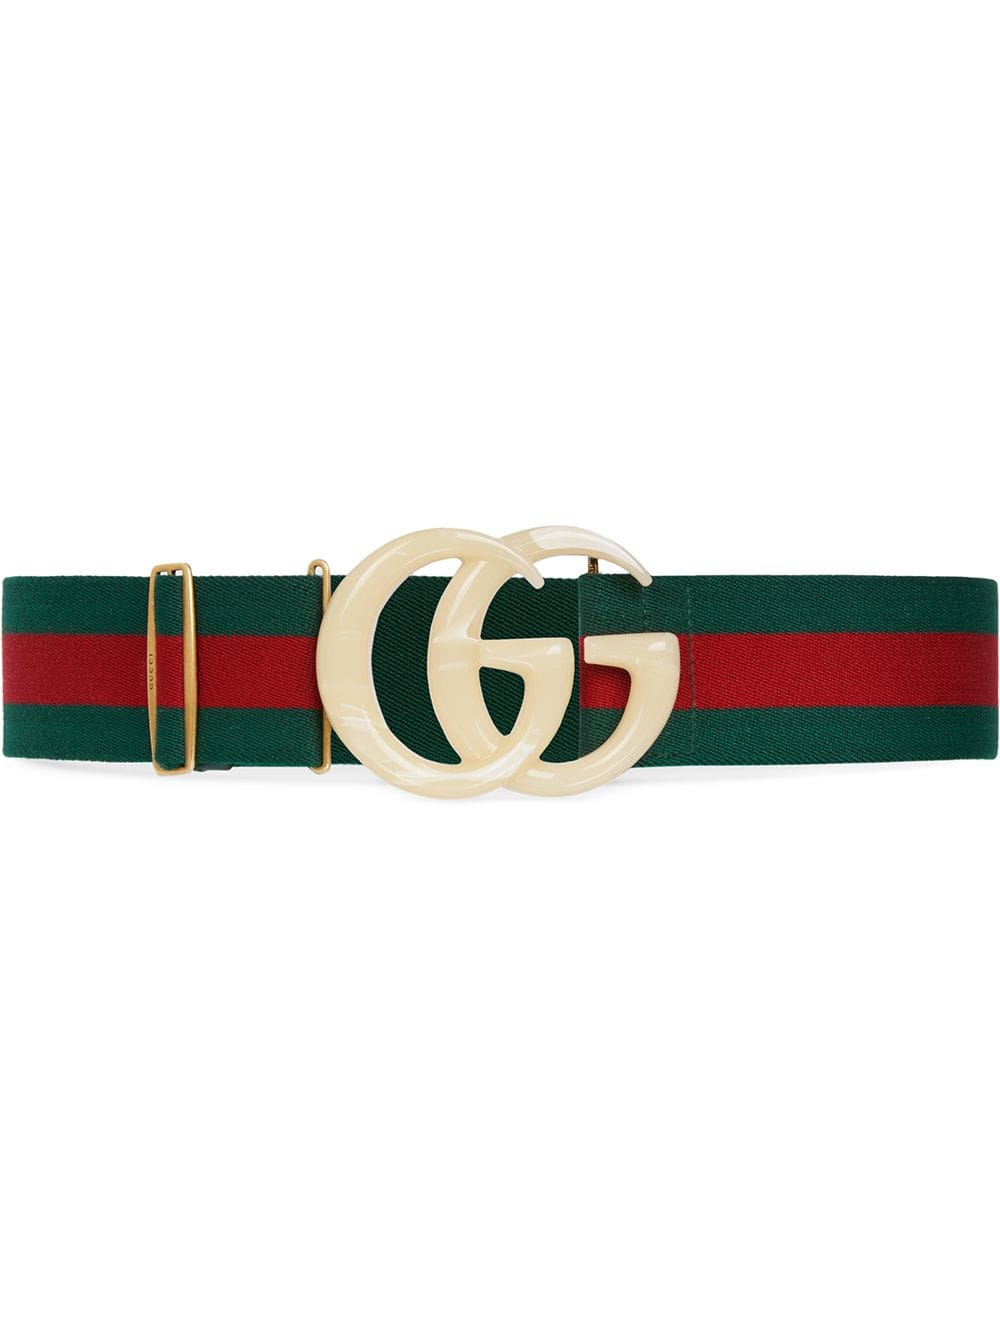 Web Belt With Gg Buckle